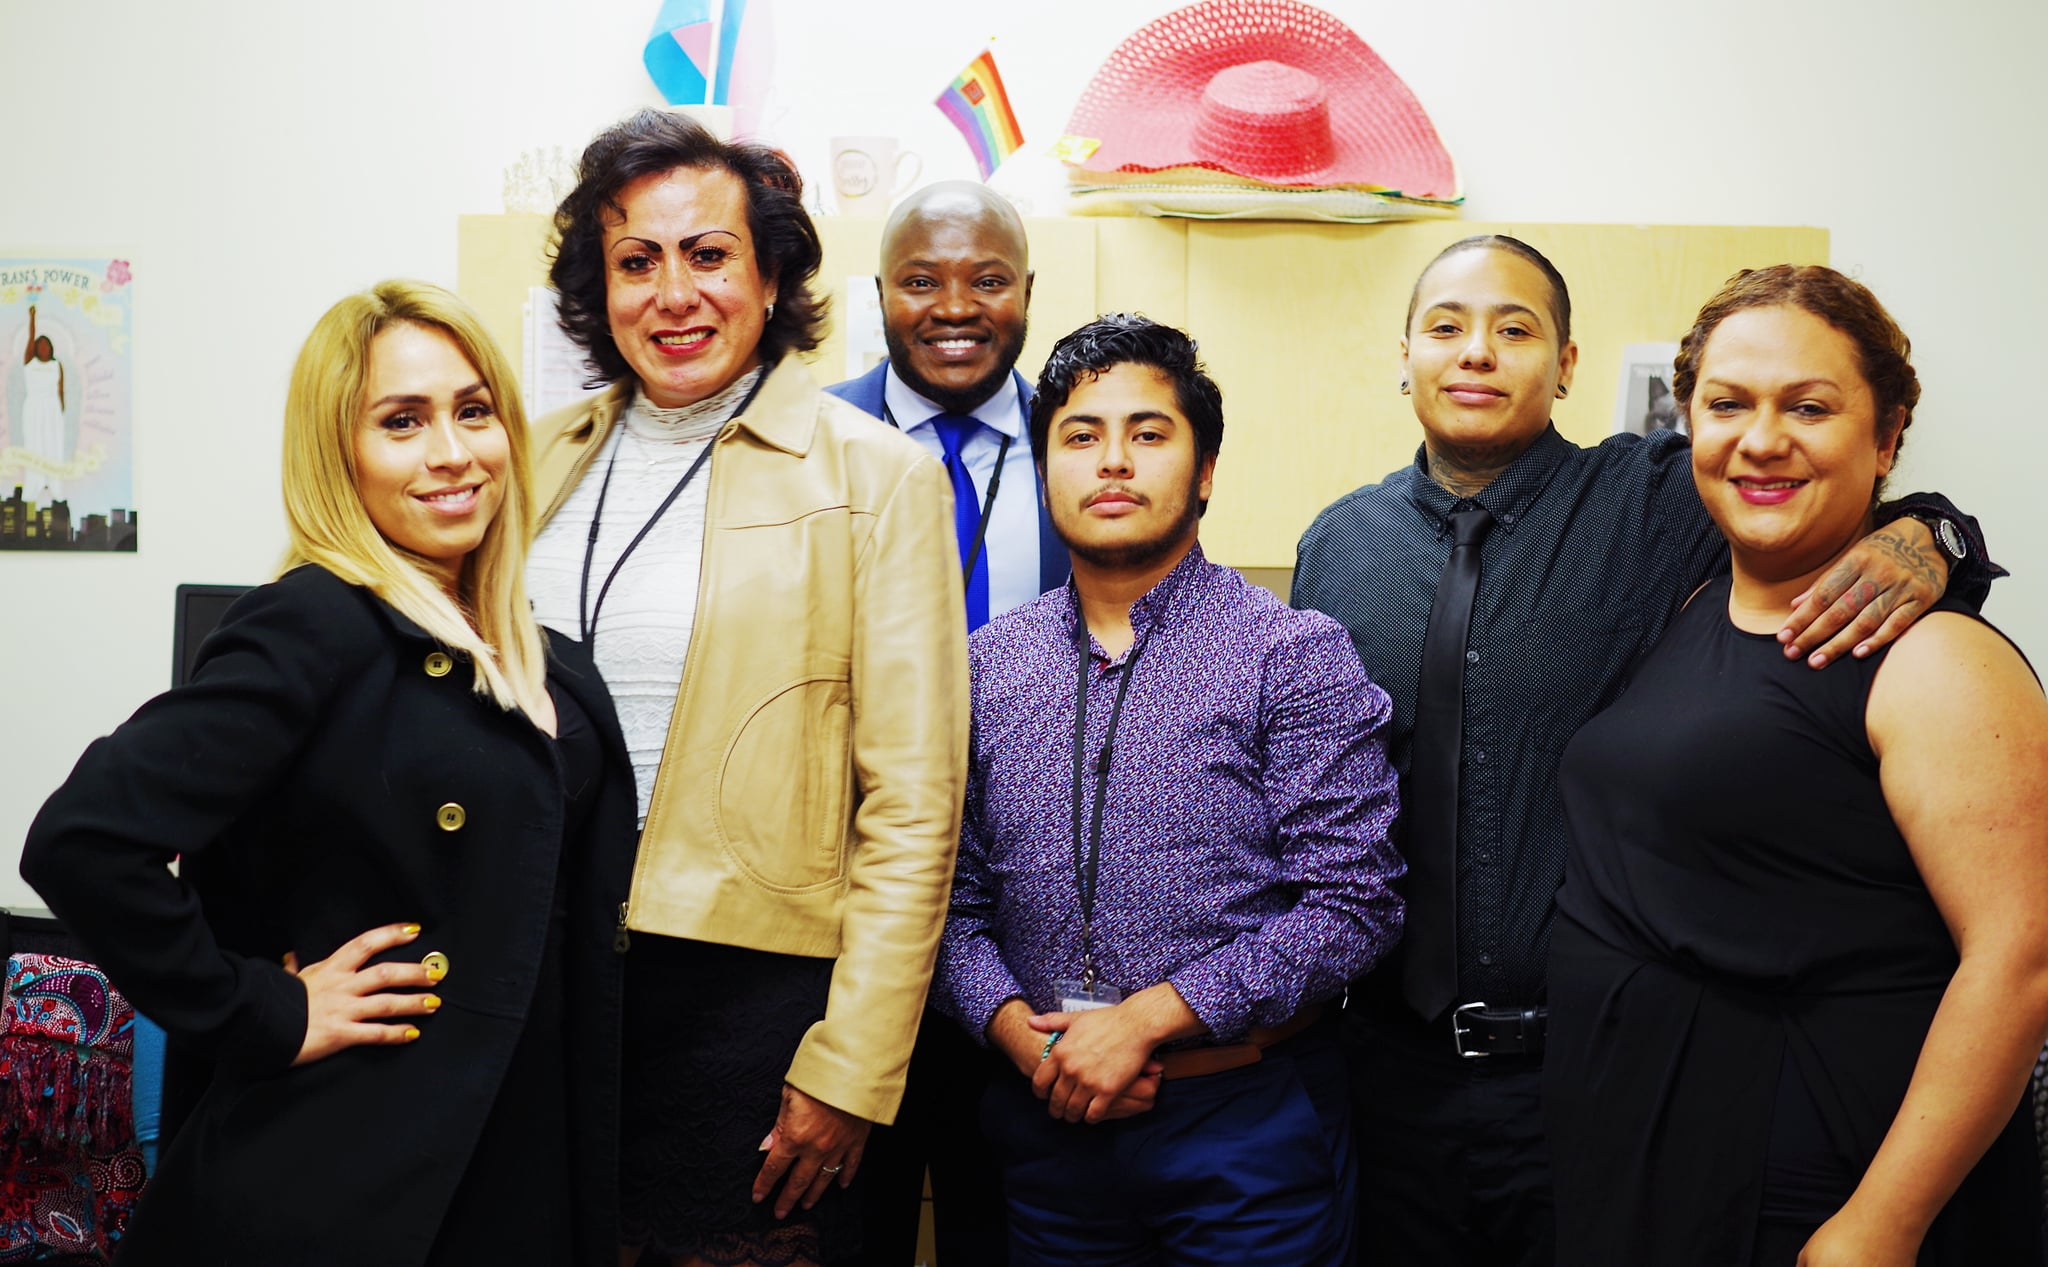 Rizi Timane and his team at St. John's Well Child and Family Center in Los Angeles